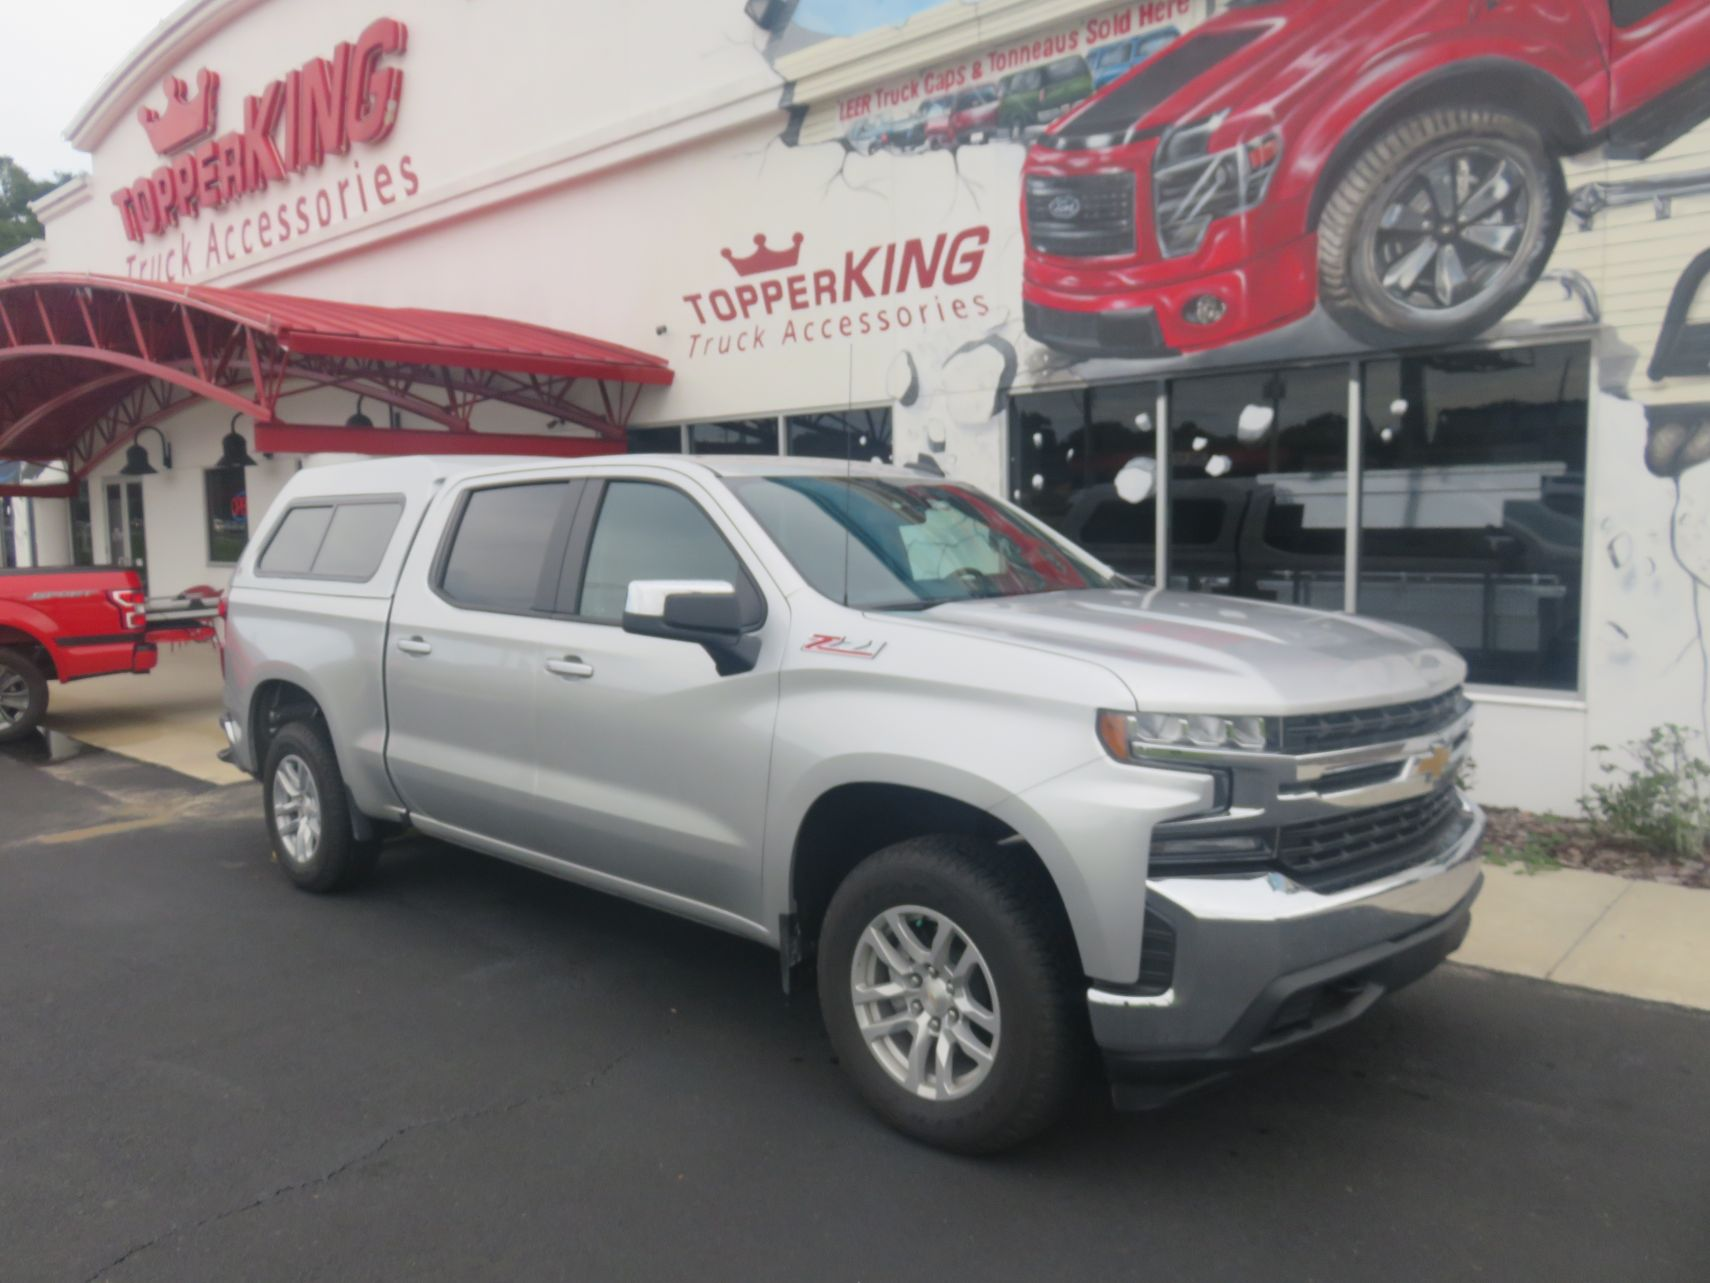 2019 Chevy Silverado with LEER 180 Fiberglass Topper, Hitch, and Tint by by TopperKING in Brandon FL 813-689-2449 or Clearwater FL 727-530-9066. Call today!